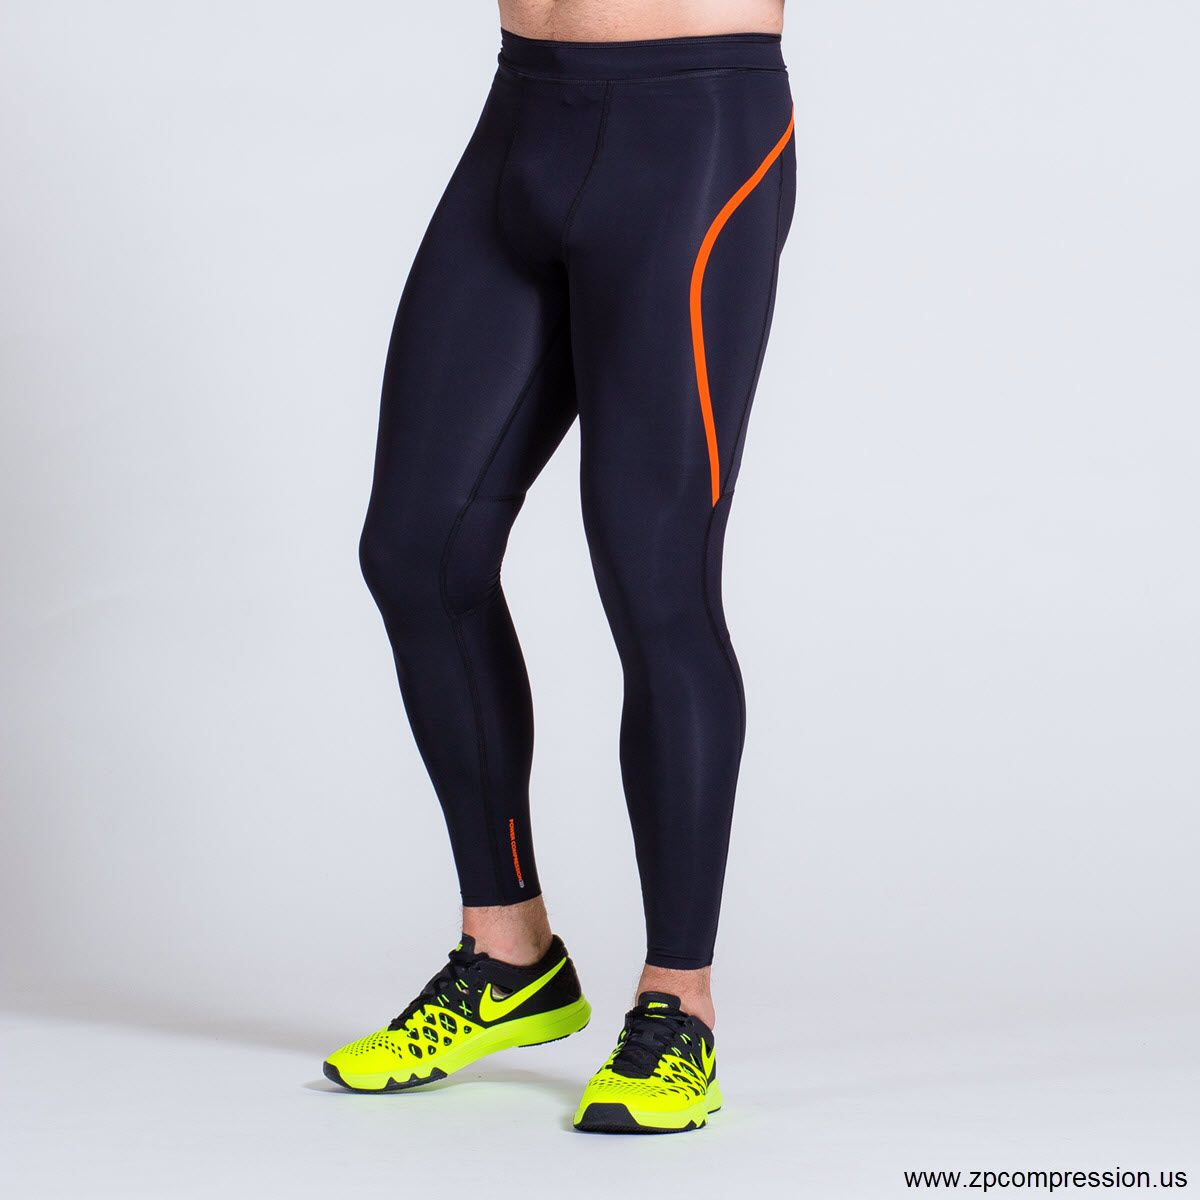 f76b788fe98ccb ZeroPoint's compression tights for circulation are woven with a powerful,  targeted weave that allows more compression in the calves and less  compression in ...